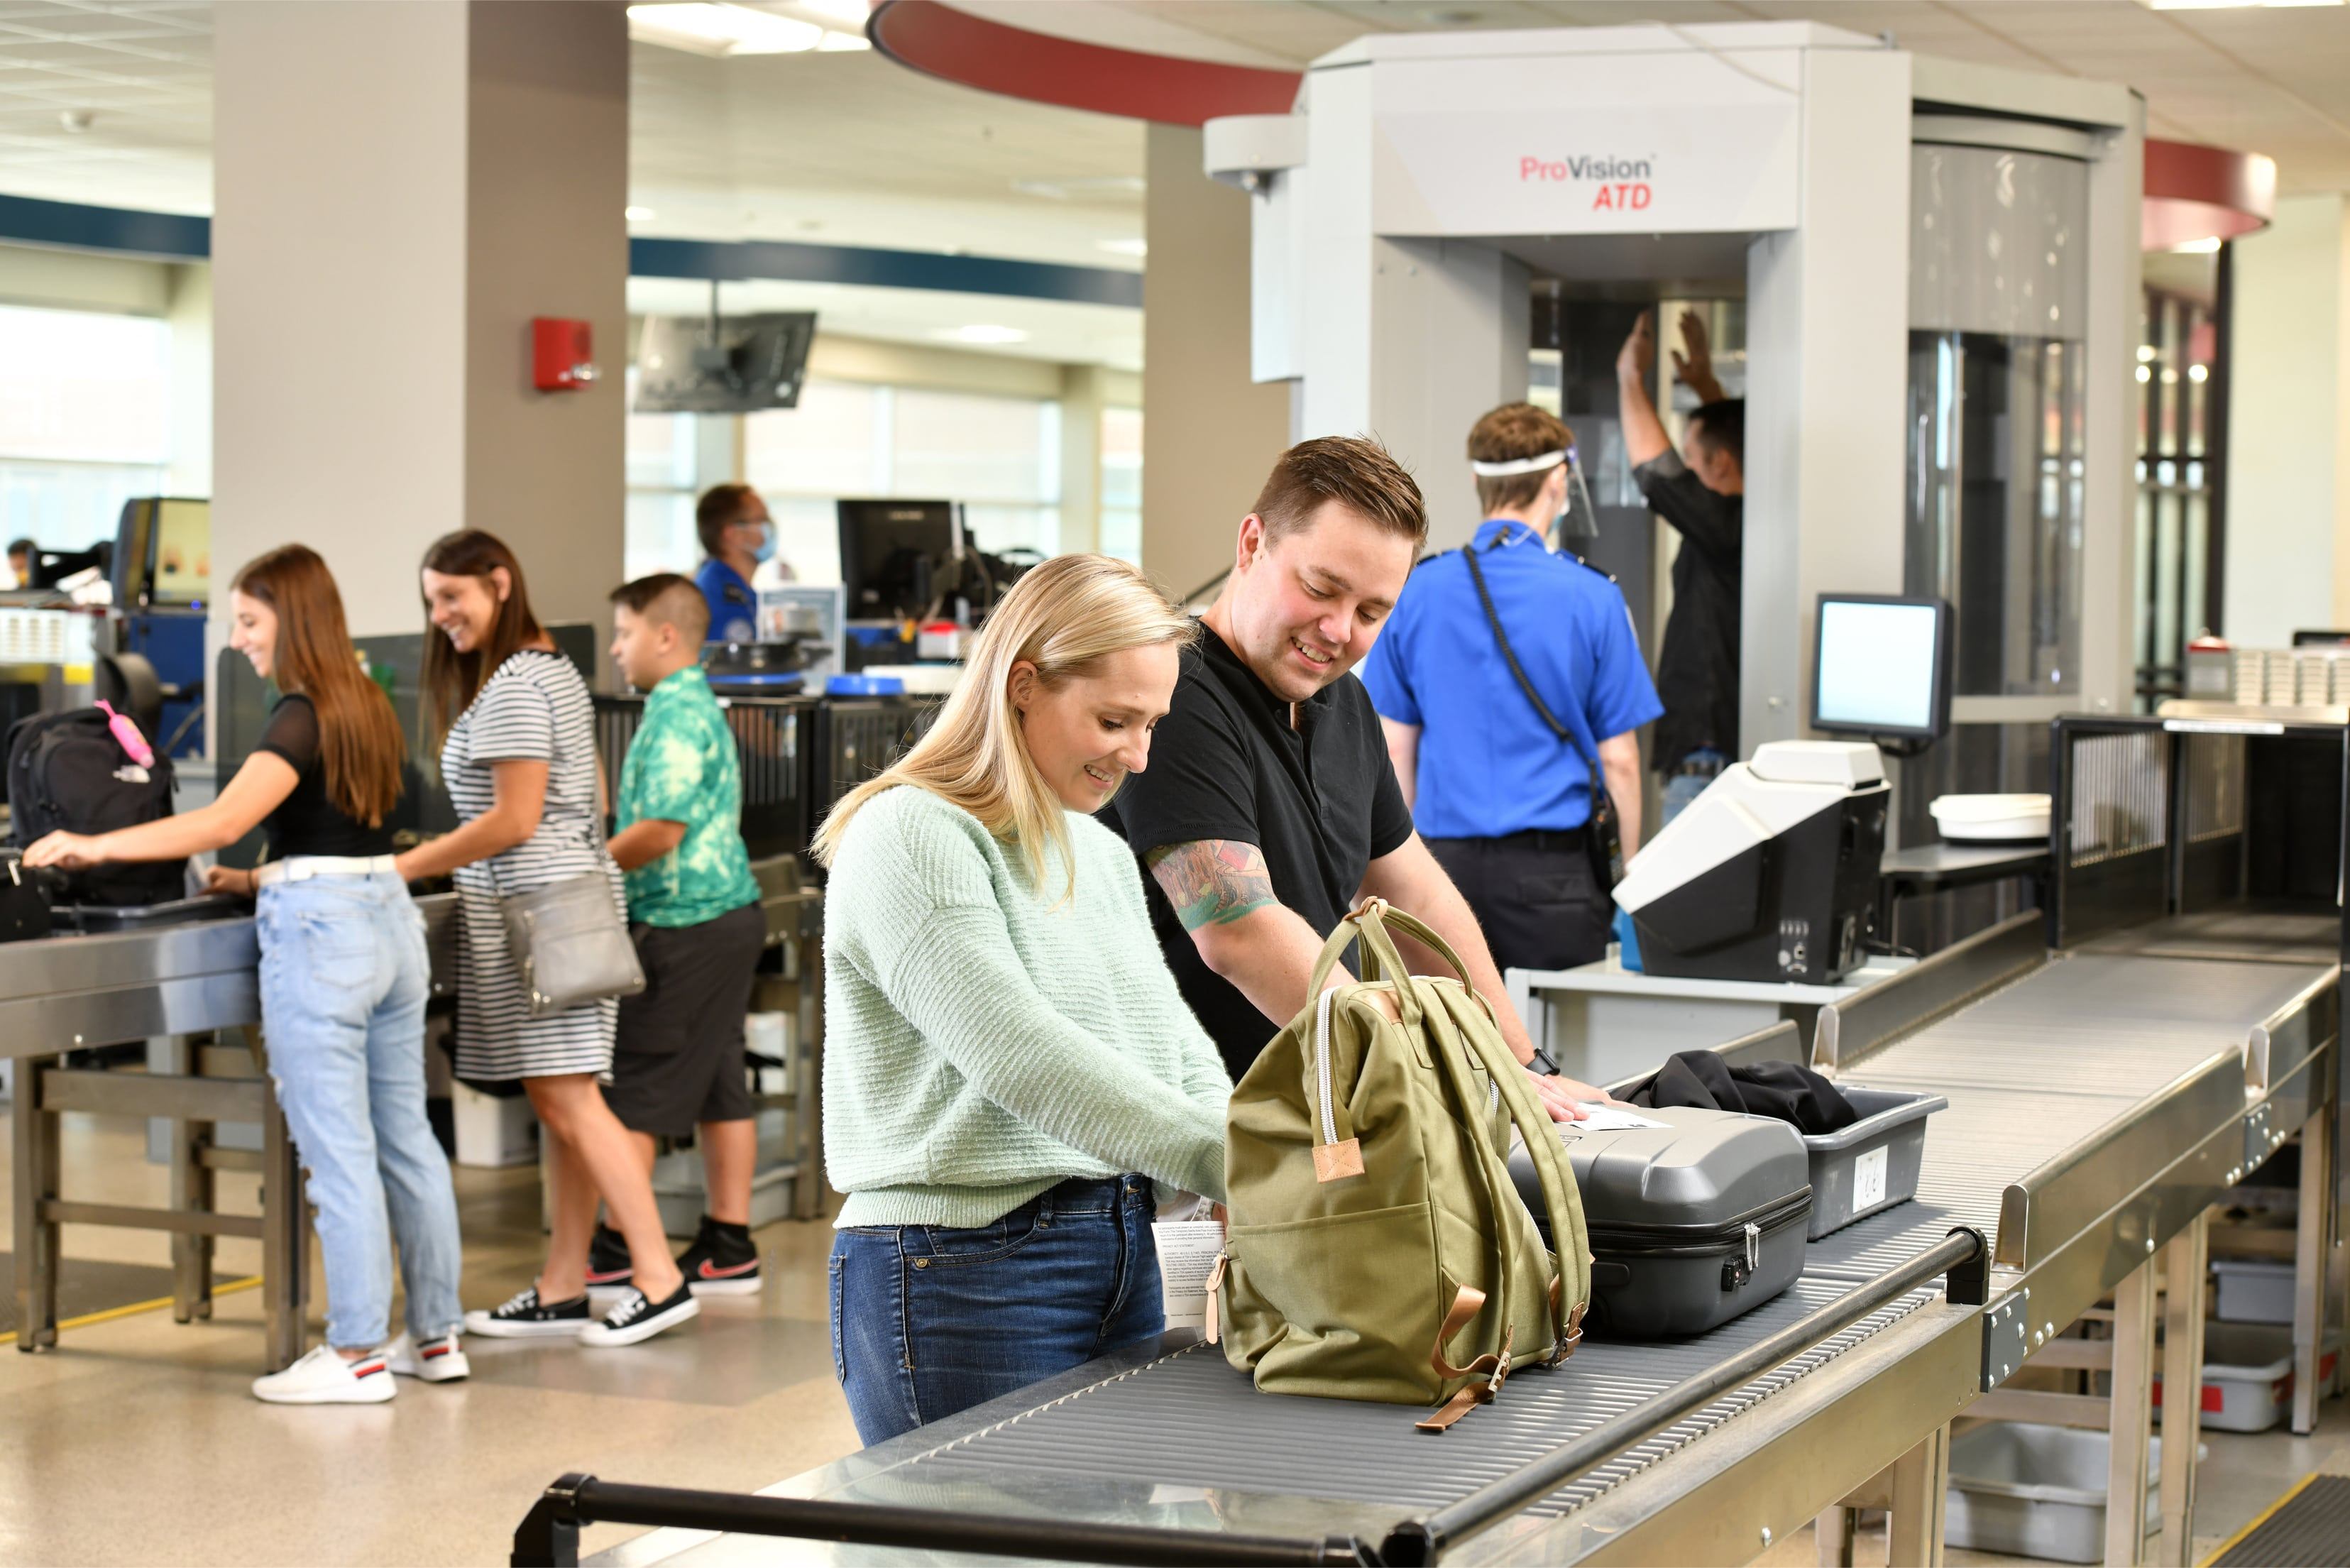 Couple going through TSA security at Des Moines International Airport